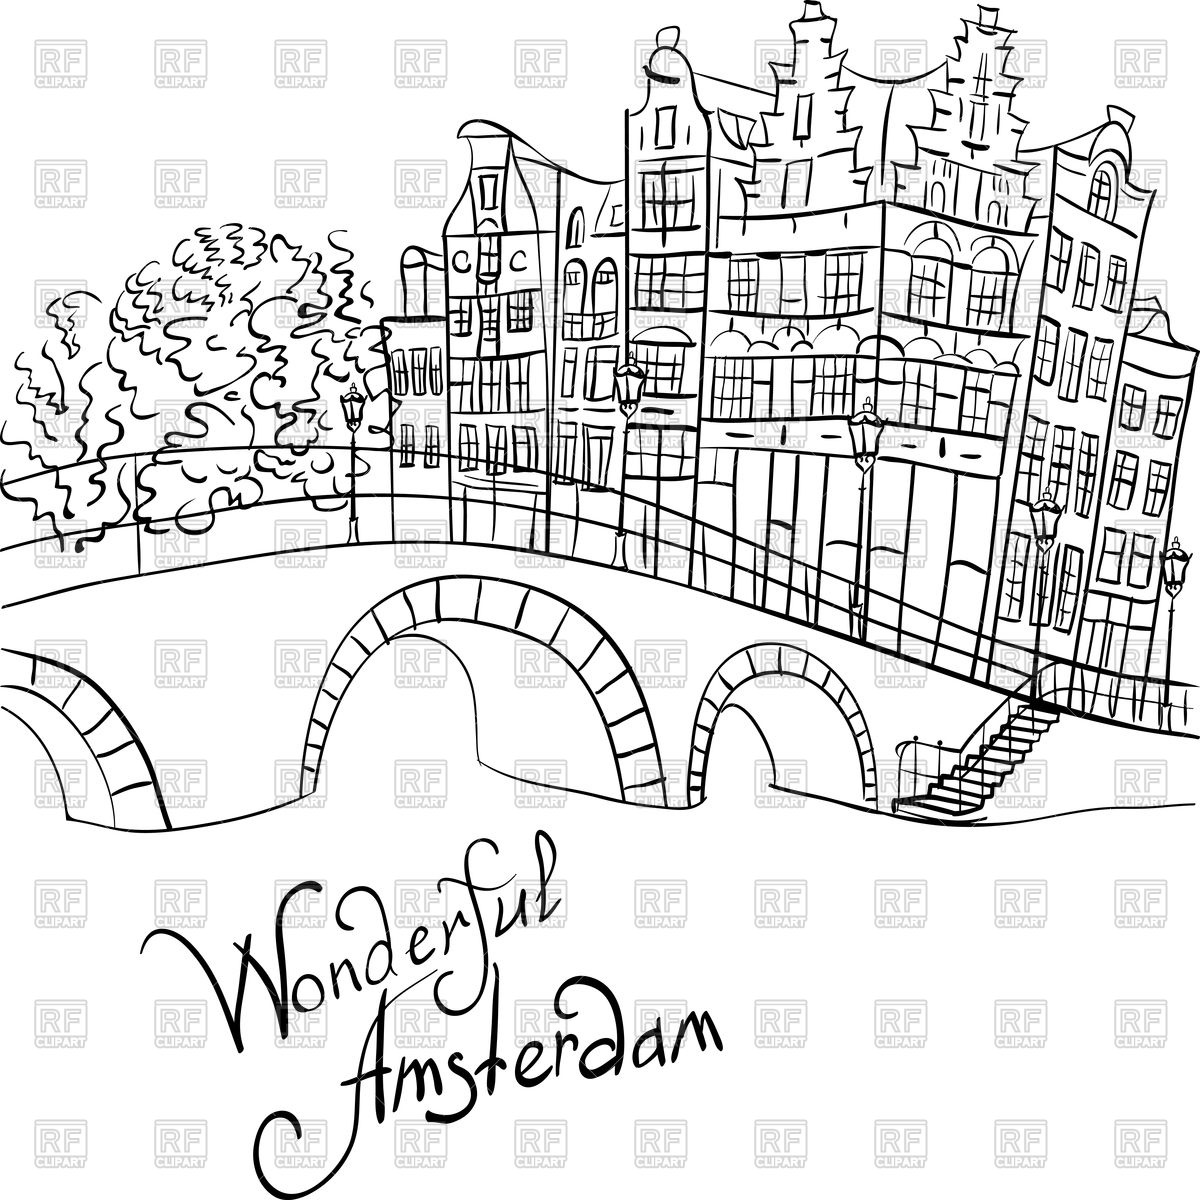 Amsterdam canal, bridge and typical houses Vector Image #94594.